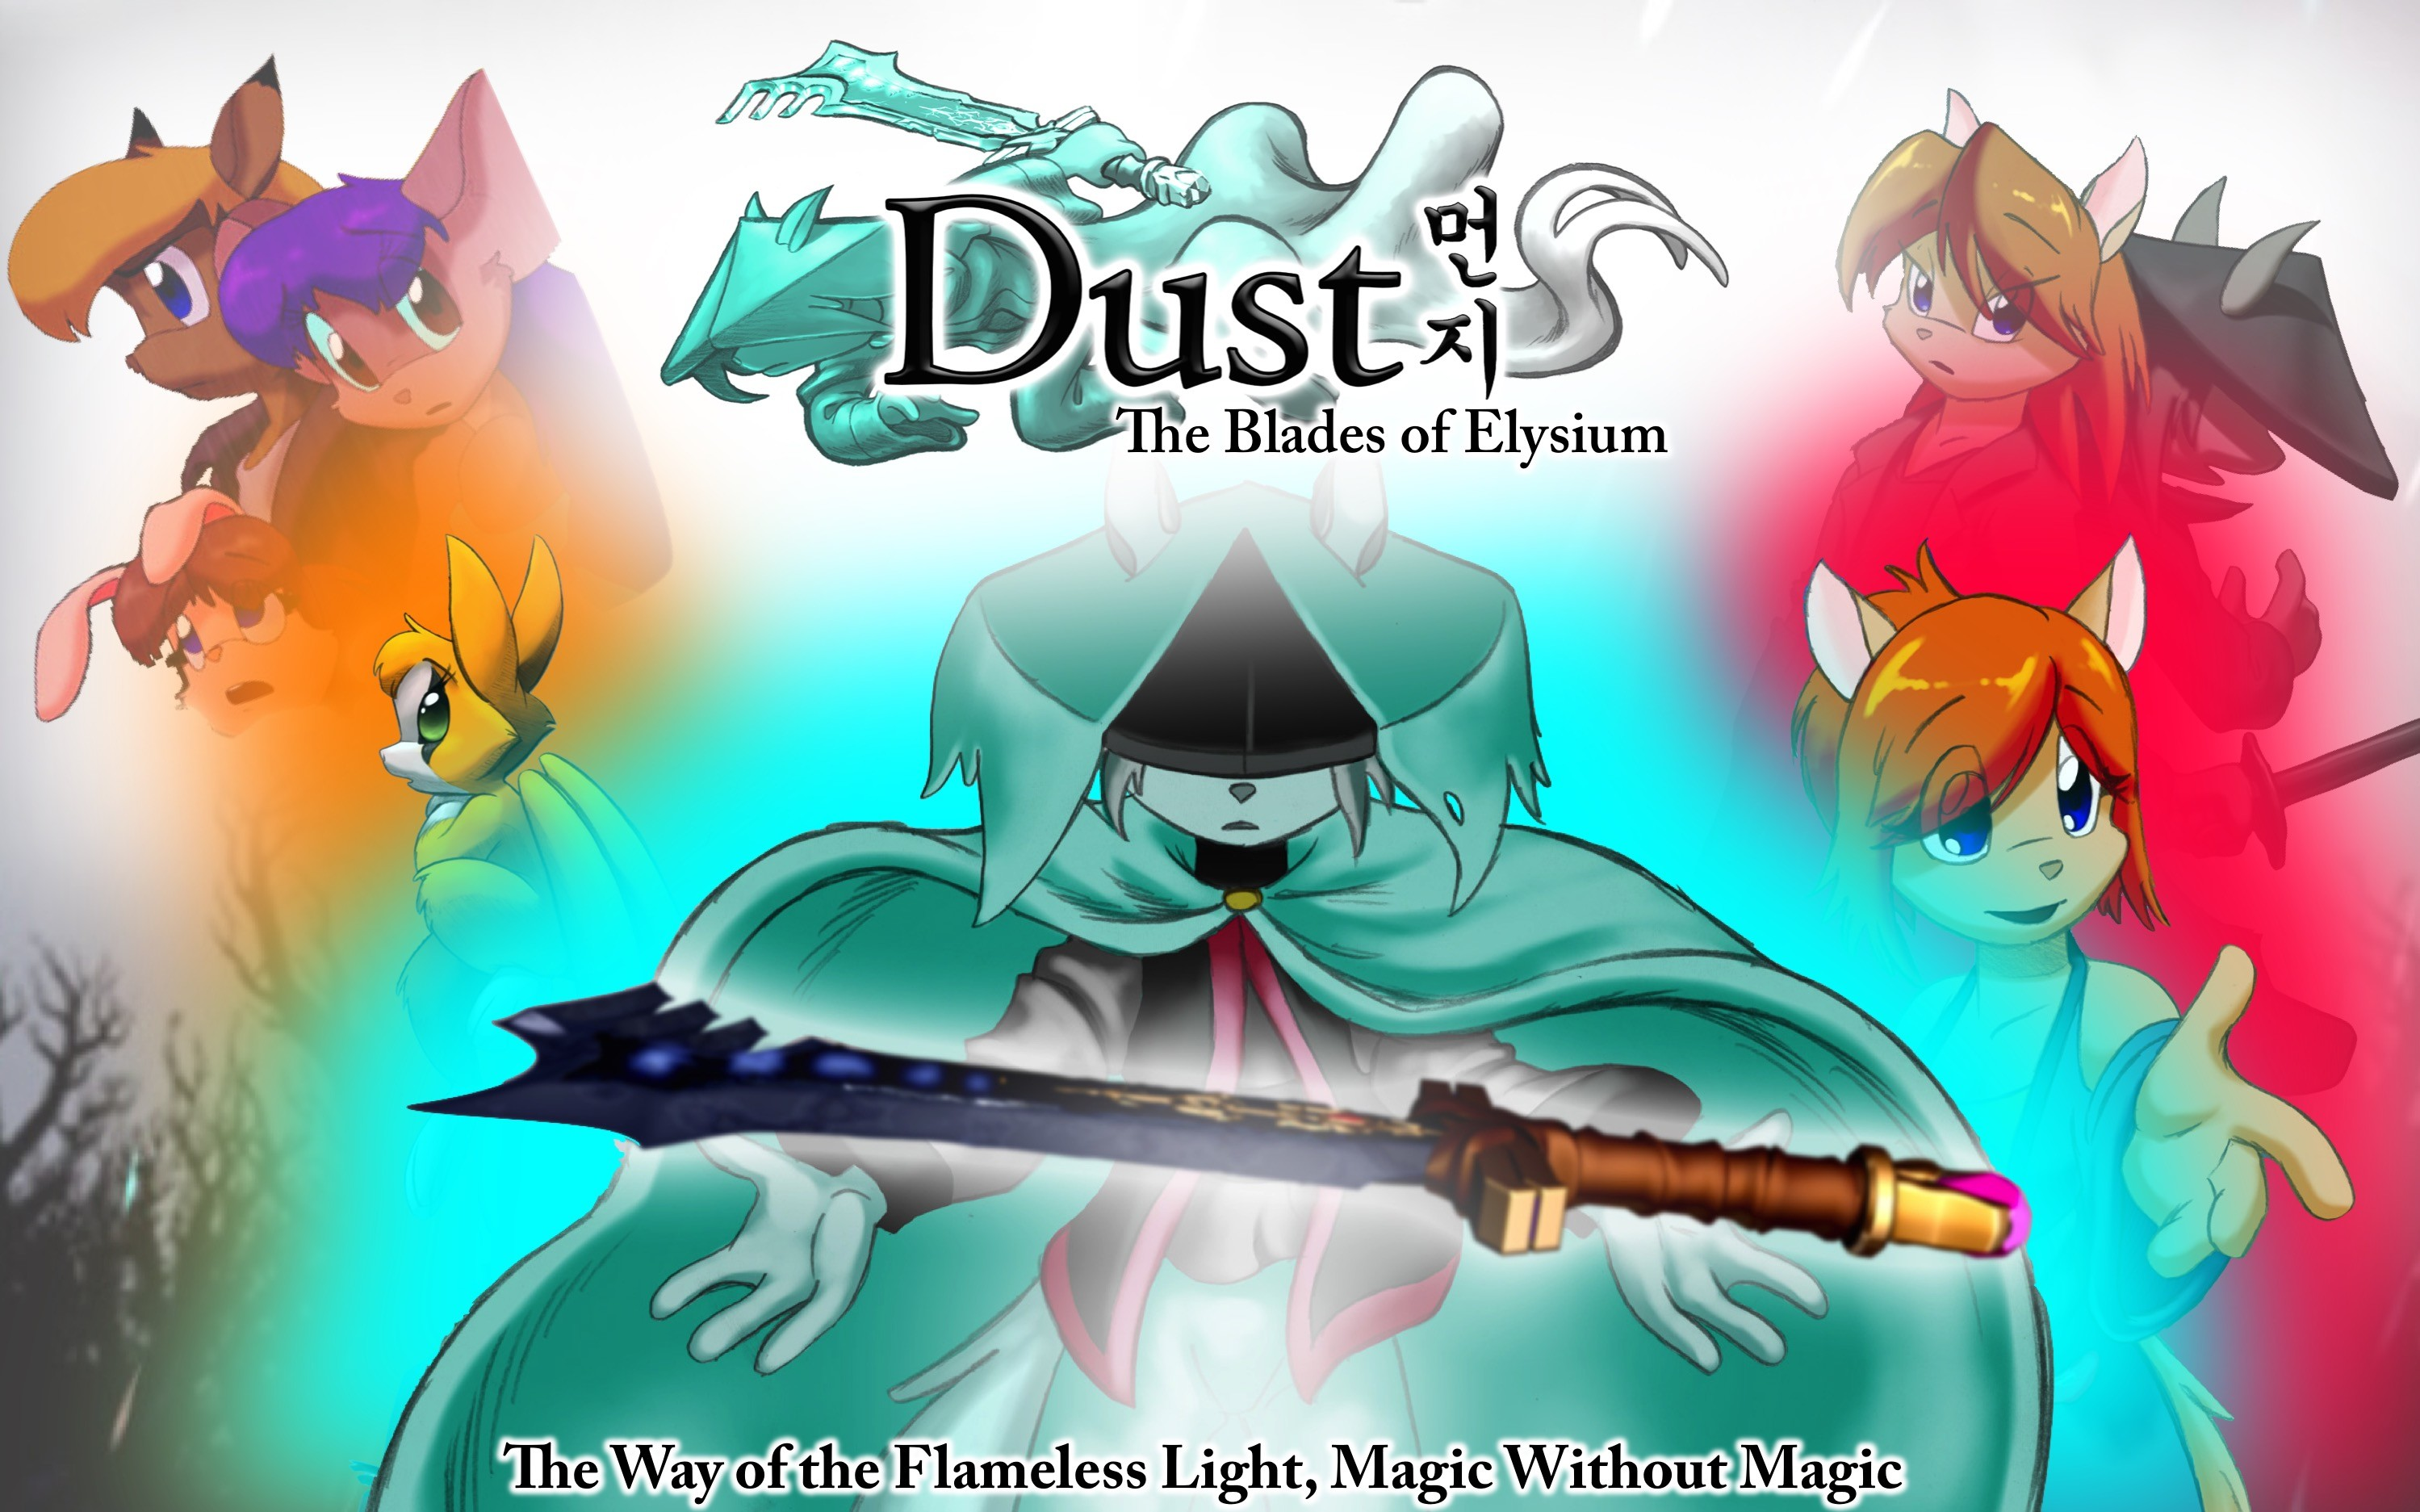 … JSeedProductions Dust: The Blades of Elysium by JSeedProductions